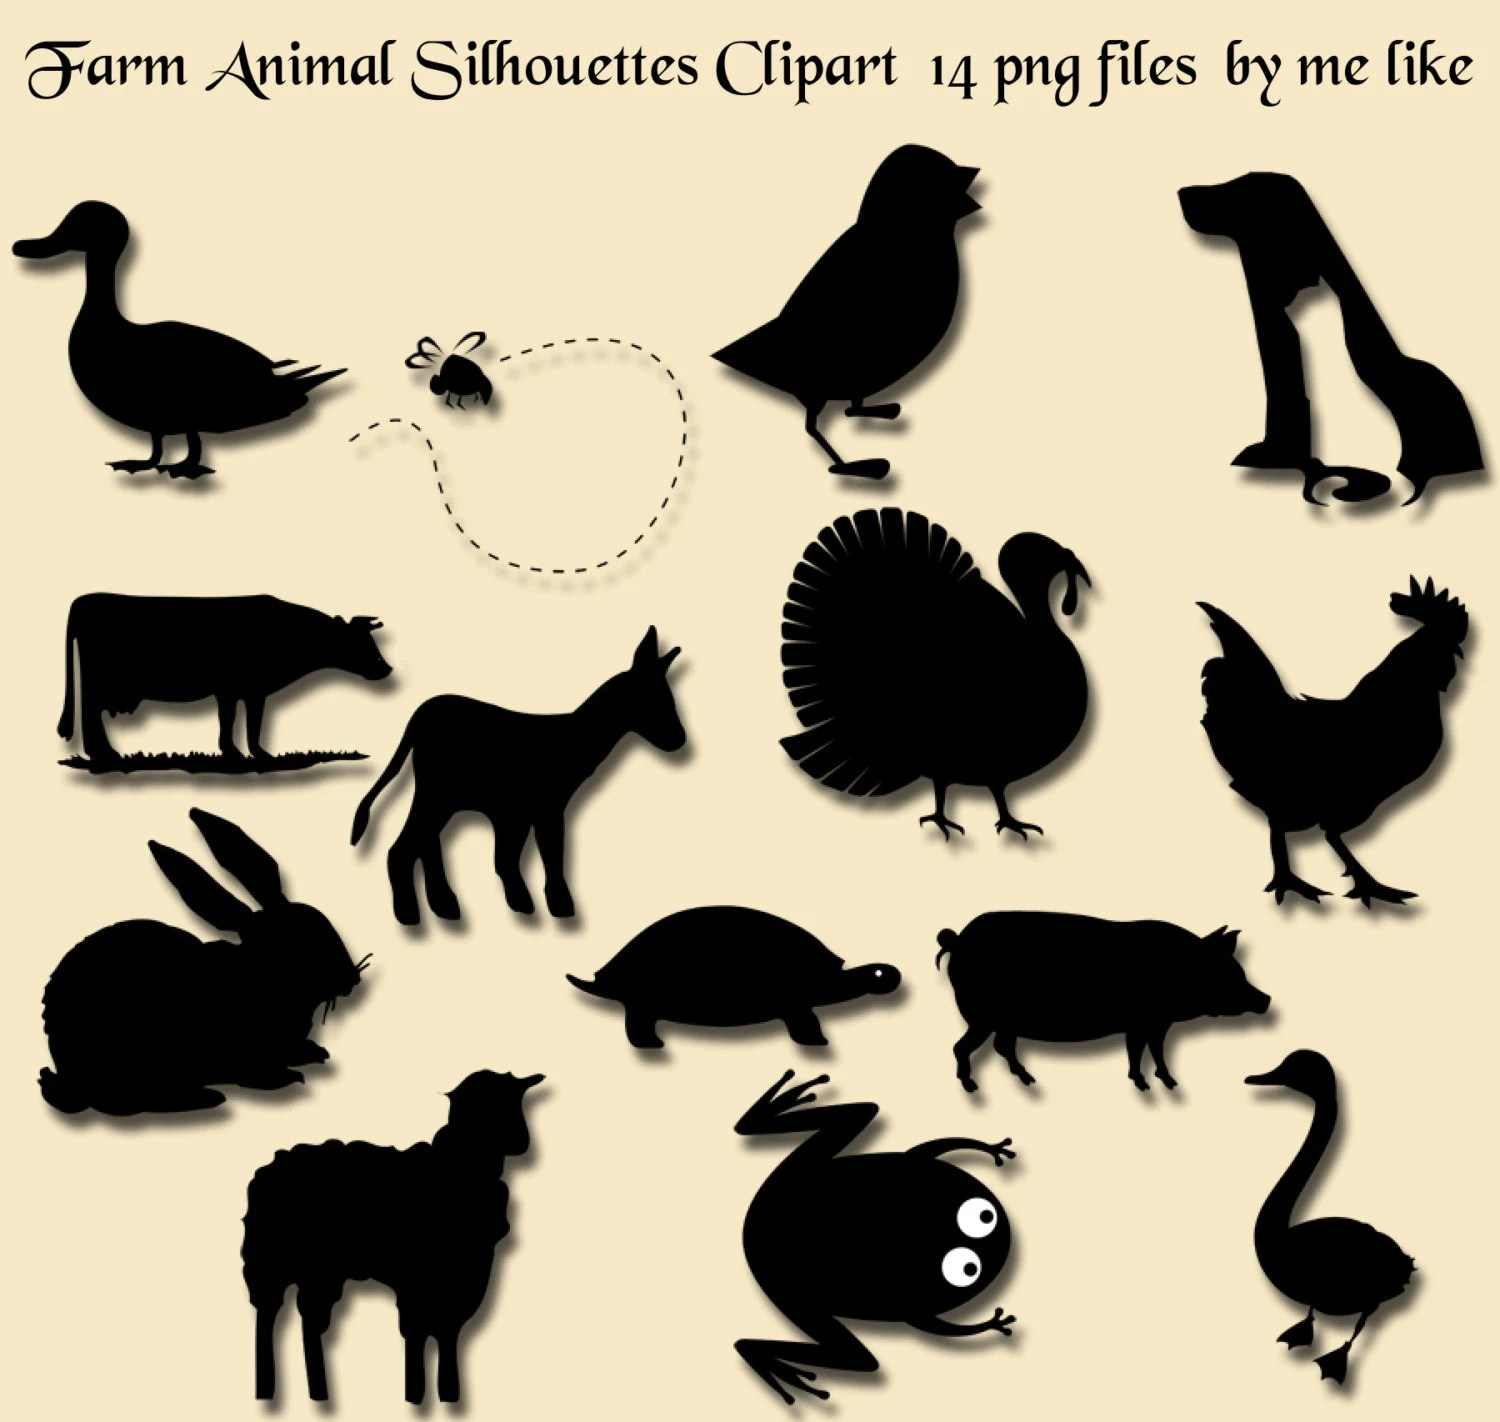 small resolution of farm animal silhouettes clip art instant download 14 individual png files clipart for personal or commercial use 300 dpi embellishment